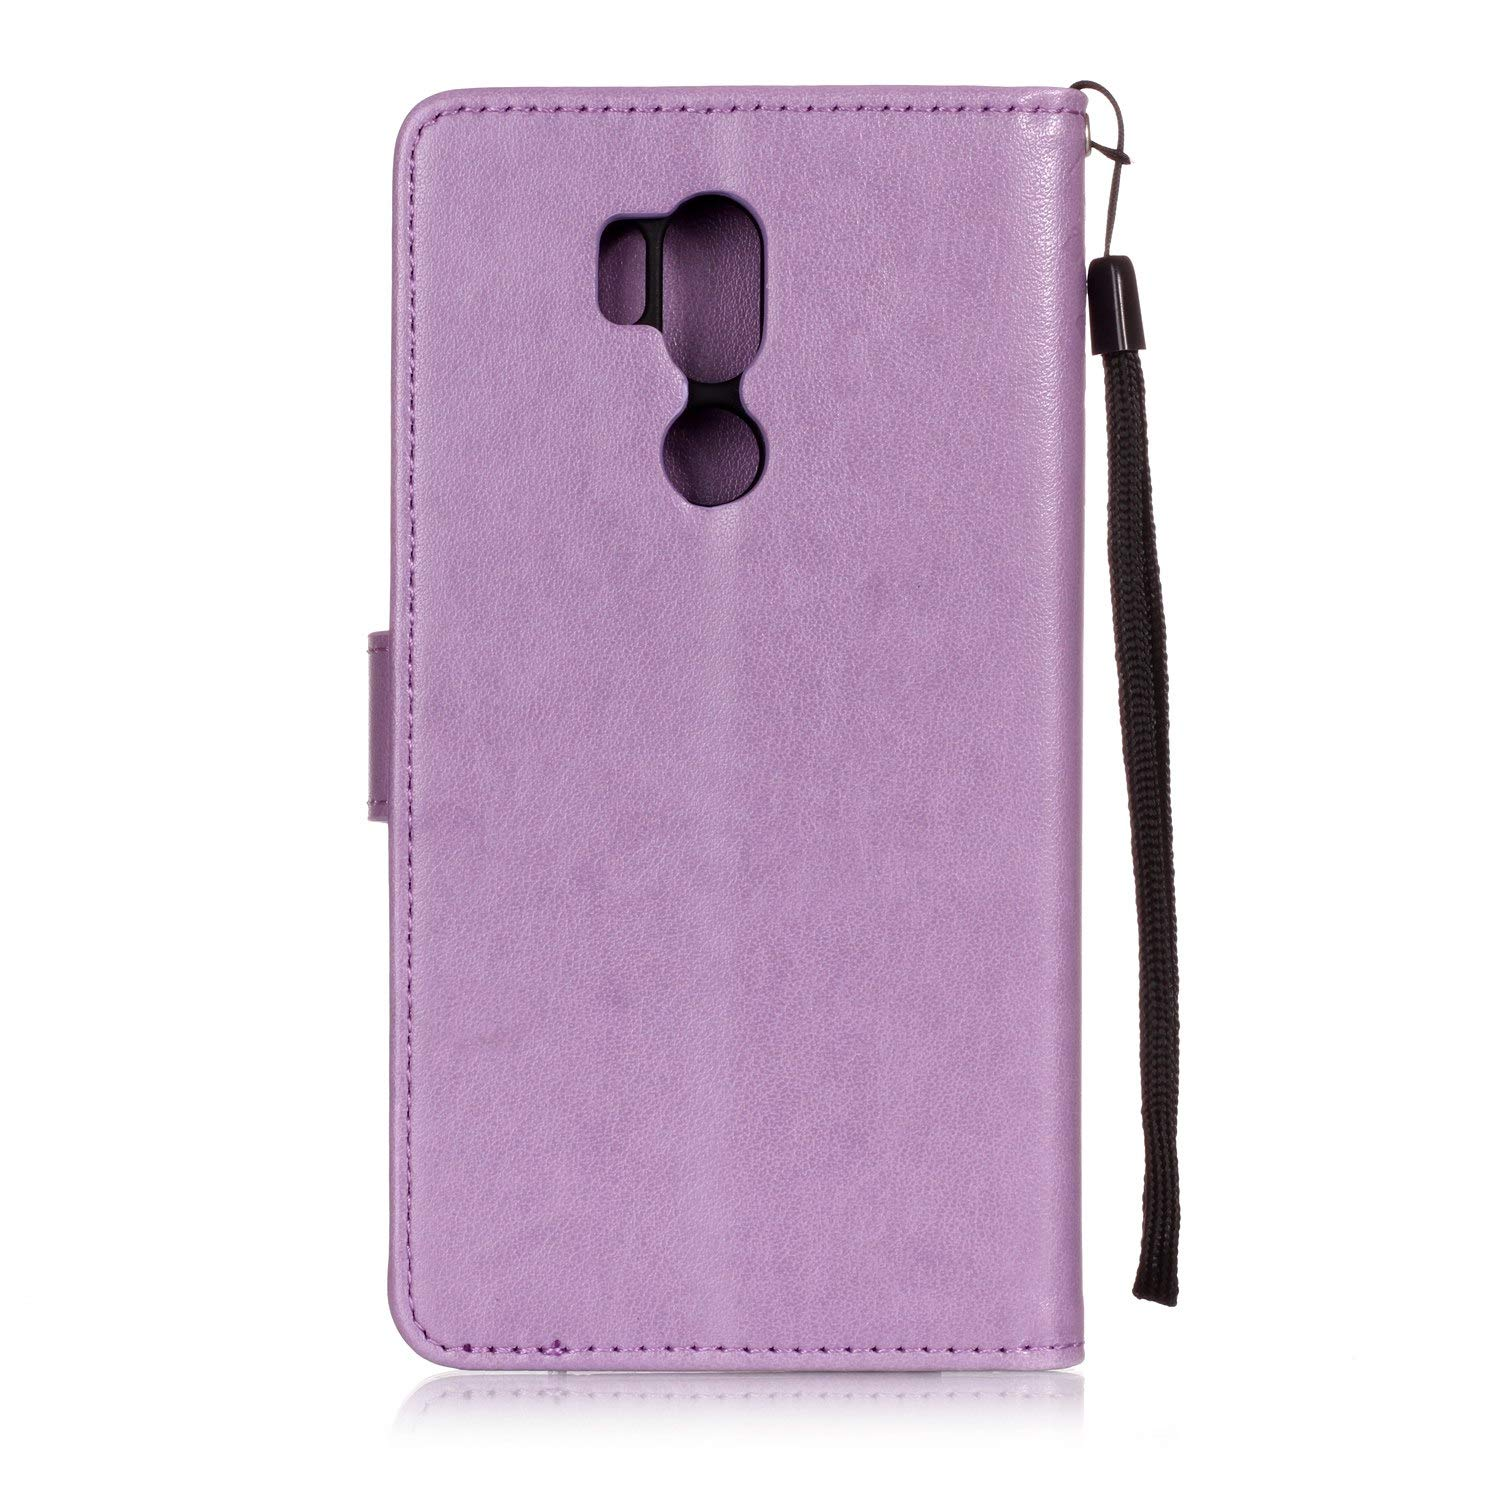 Shinyzone Protective Phone Case for LG G7,LG G7 ThinQ Case Embossed Butterfly Dandelion Pattern Series,Magnetic Stand Cover with Card Slots Leather Wallet Flip Case-Purple by Shinyzone (Image #3)